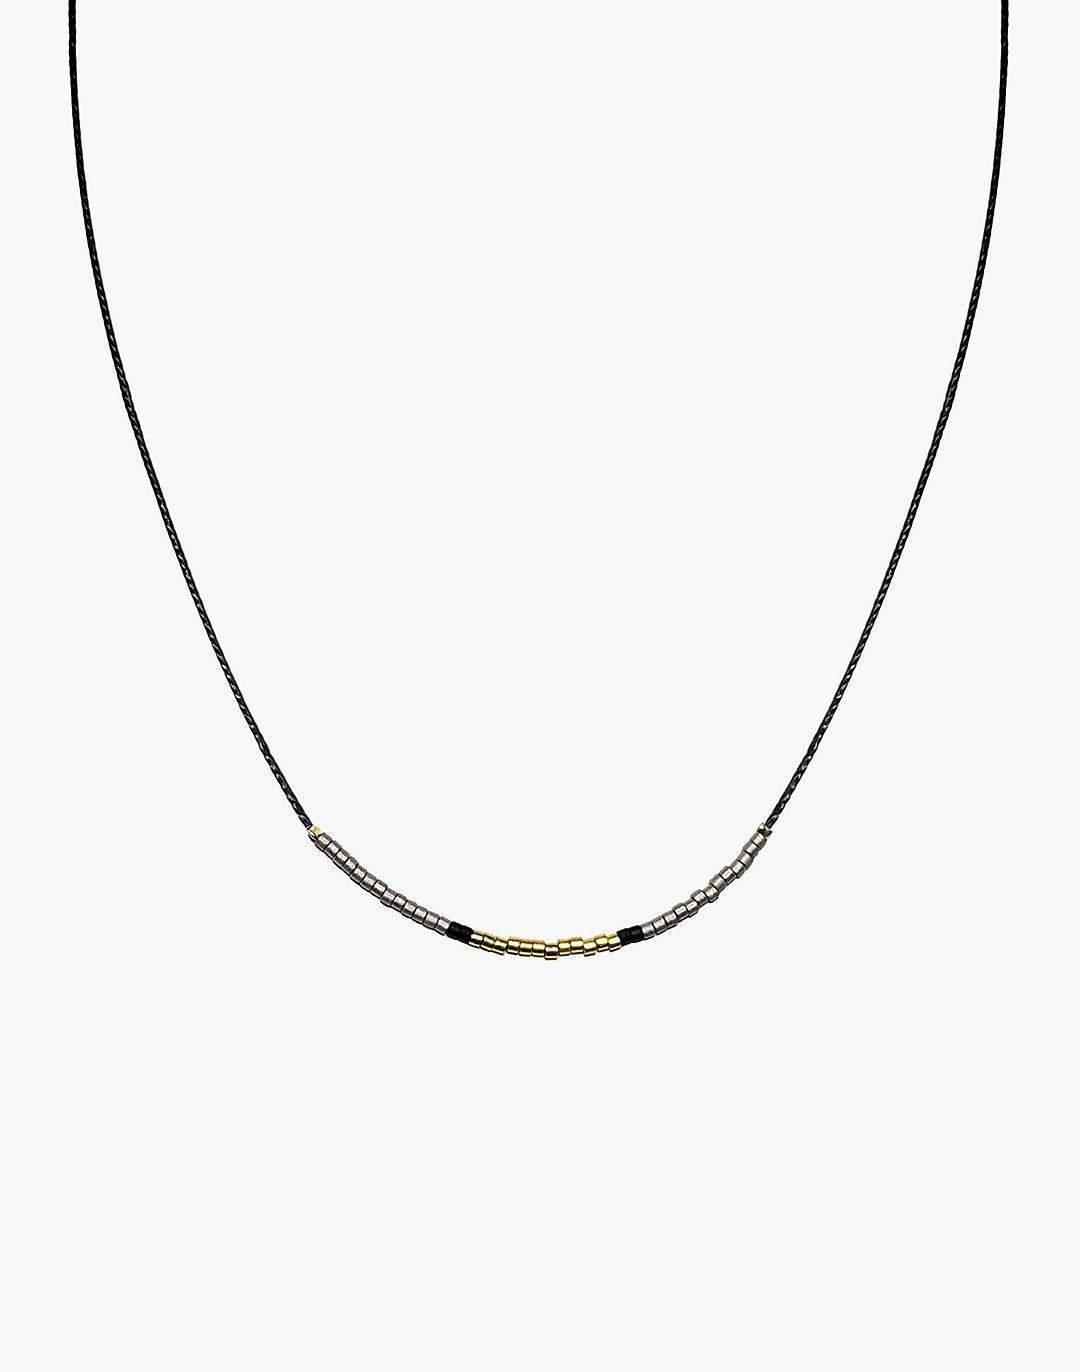 Cast of Stones Beaded Intention Necklace in Gold and Silver